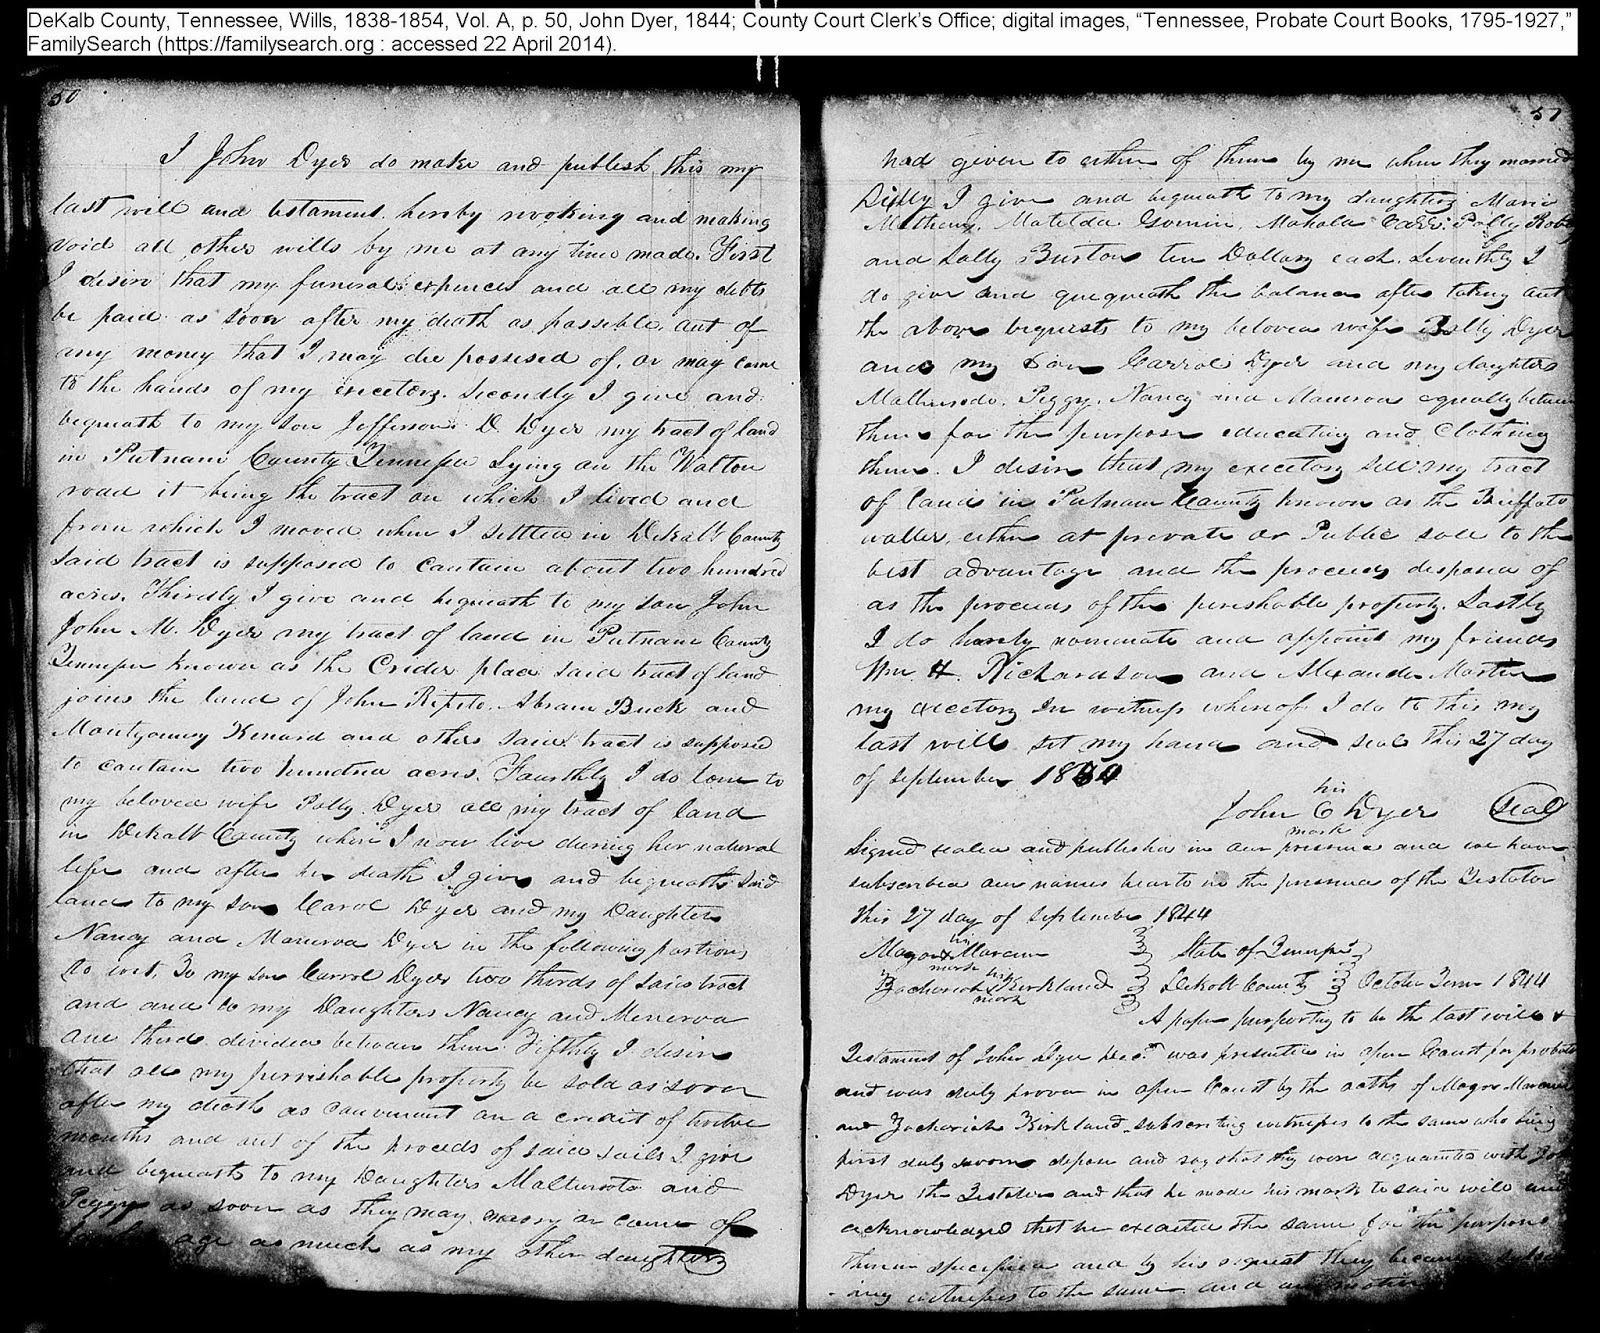 Will of John Dyer, DeKalb Co., TN, 1844, p. 50-51